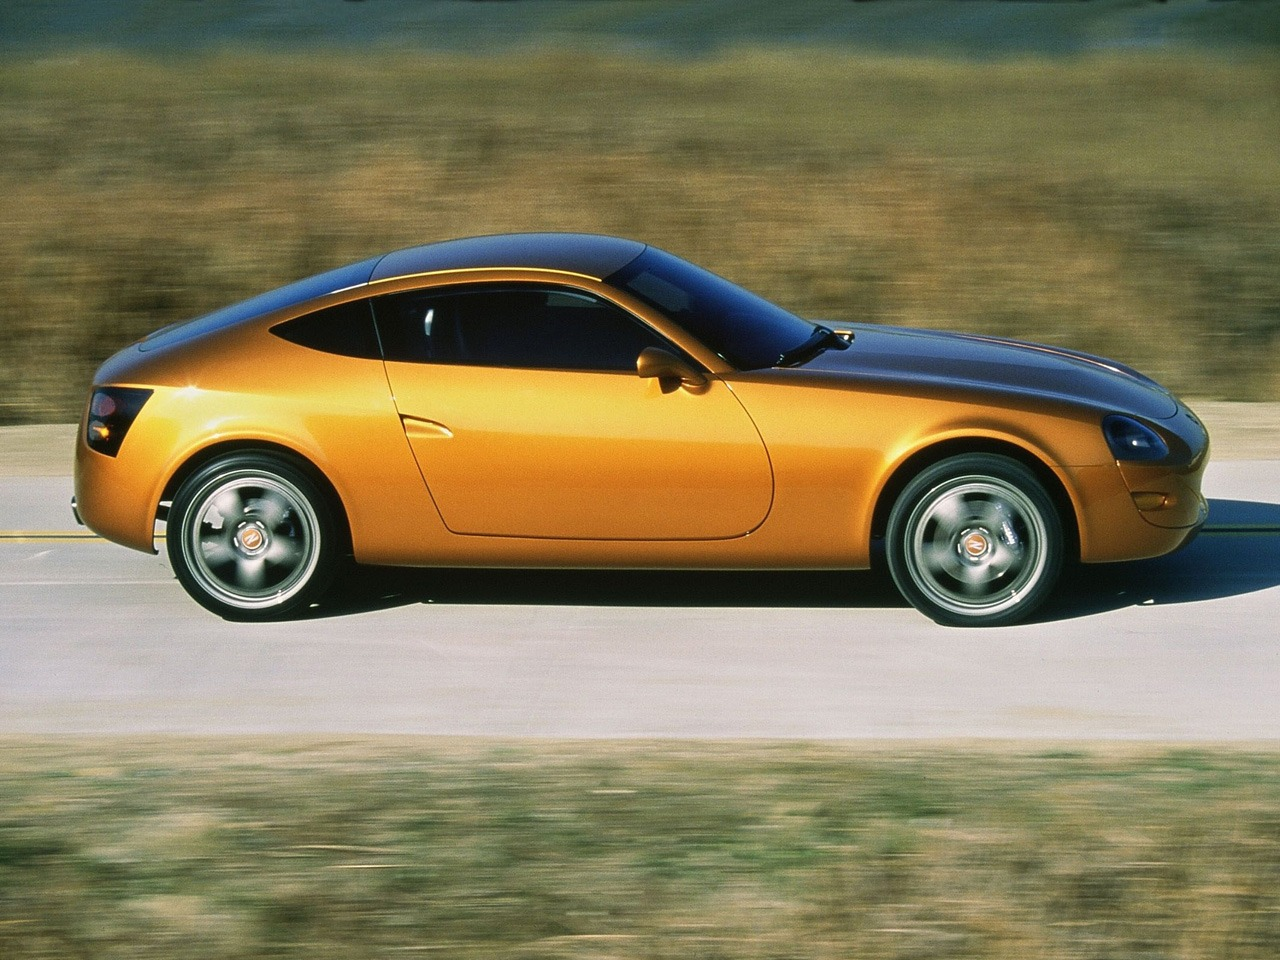 nissan concept 1999 cars 2001 vehicles vehicle visit oldconceptcars